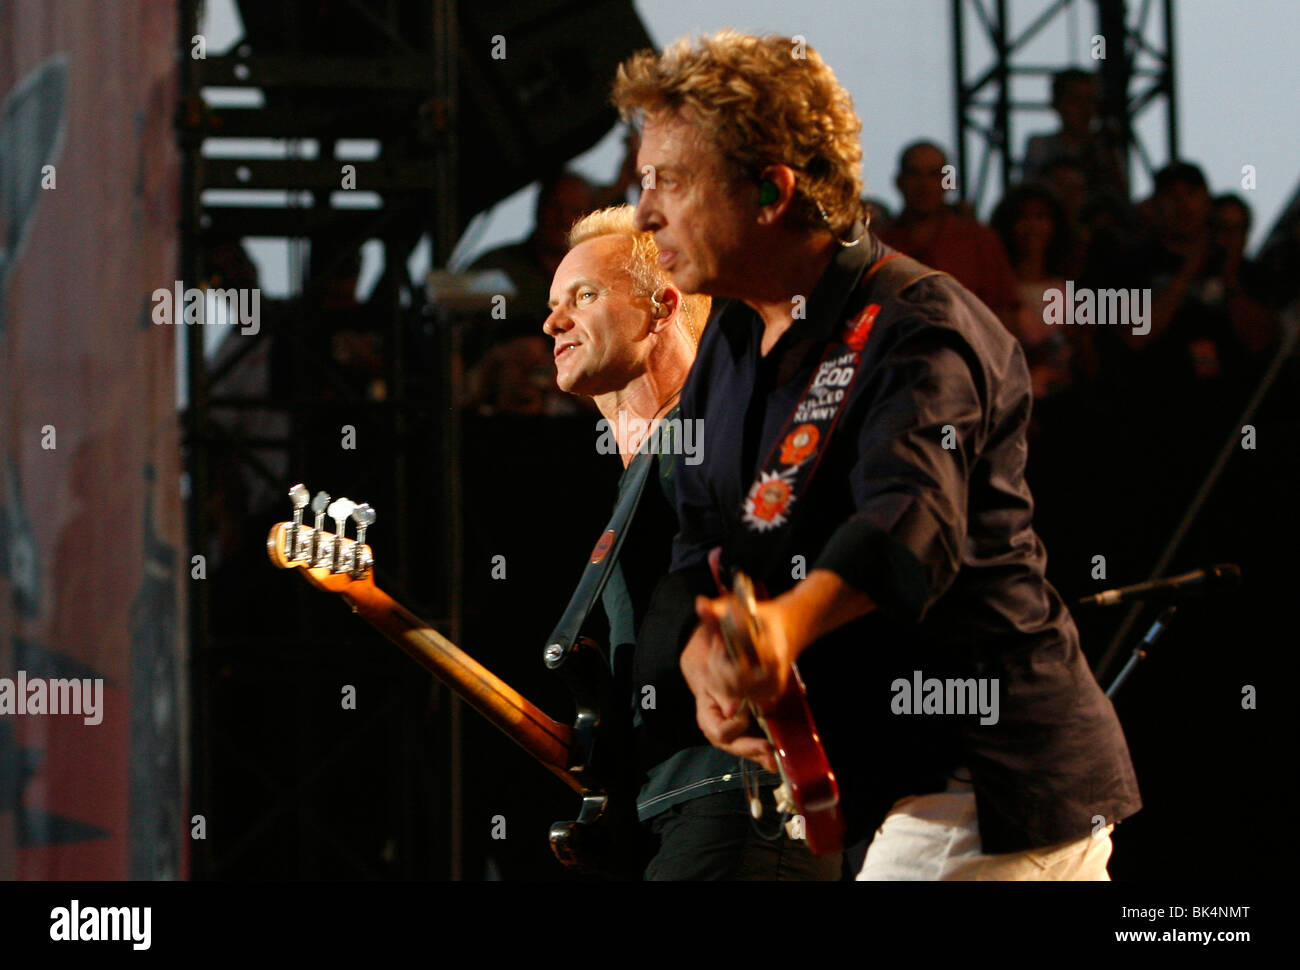 Guitarist Andy Summers and Sting of The Police performs at the Virgin Music Festival. - Stock Image